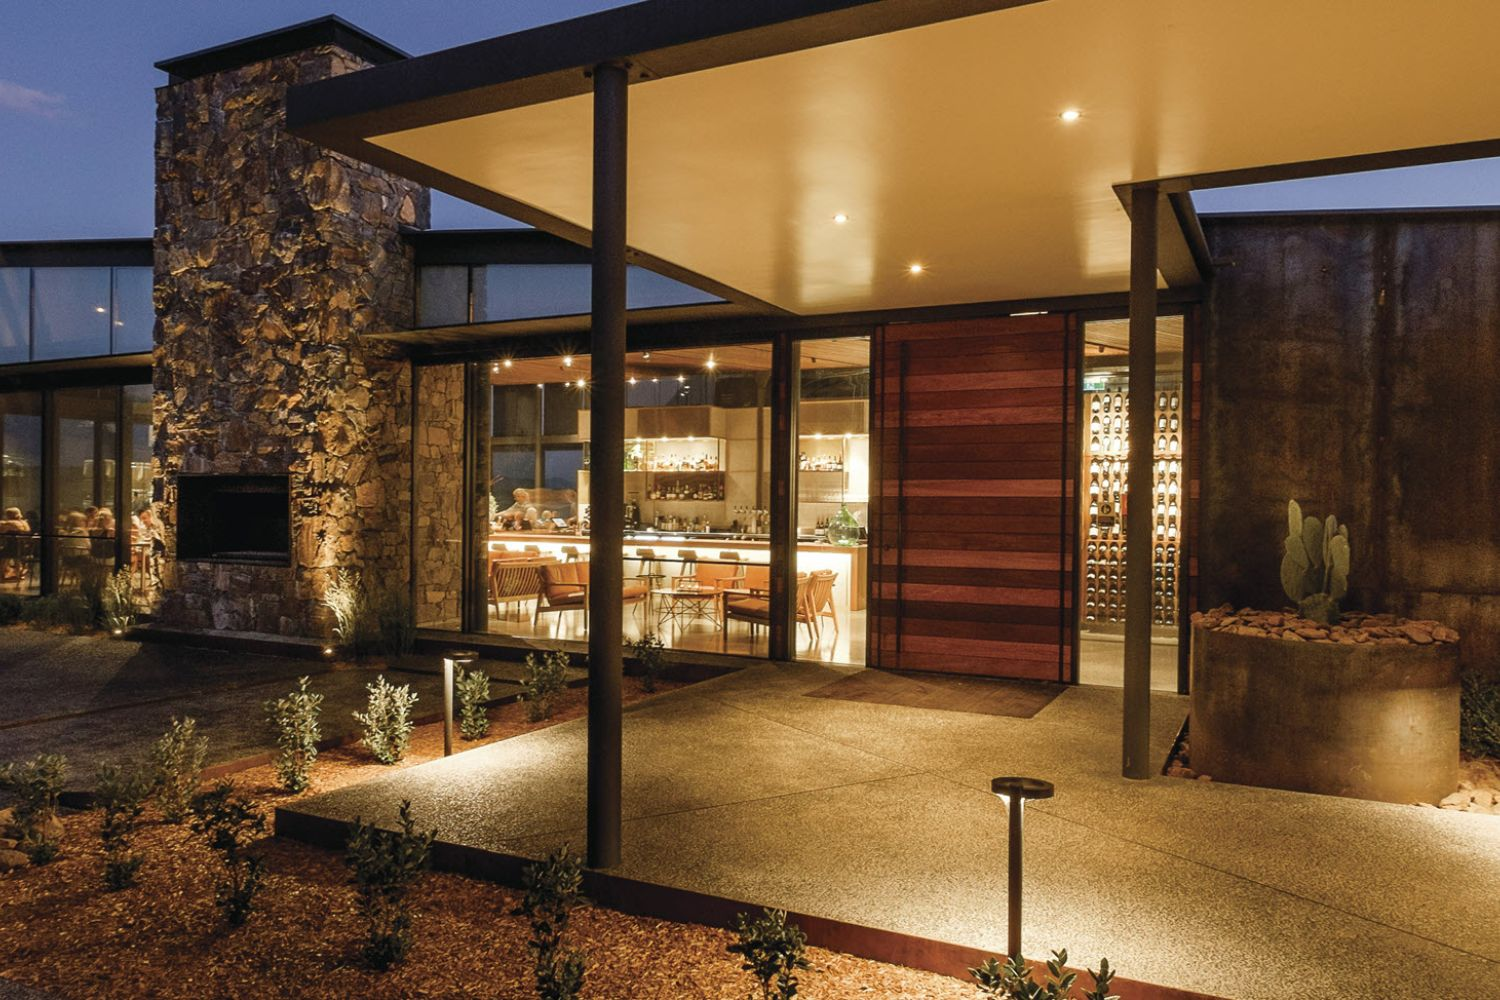 Glasshouse Restaurant's beautiful exterior design at Goonoo Goonoo Station, Tamworth